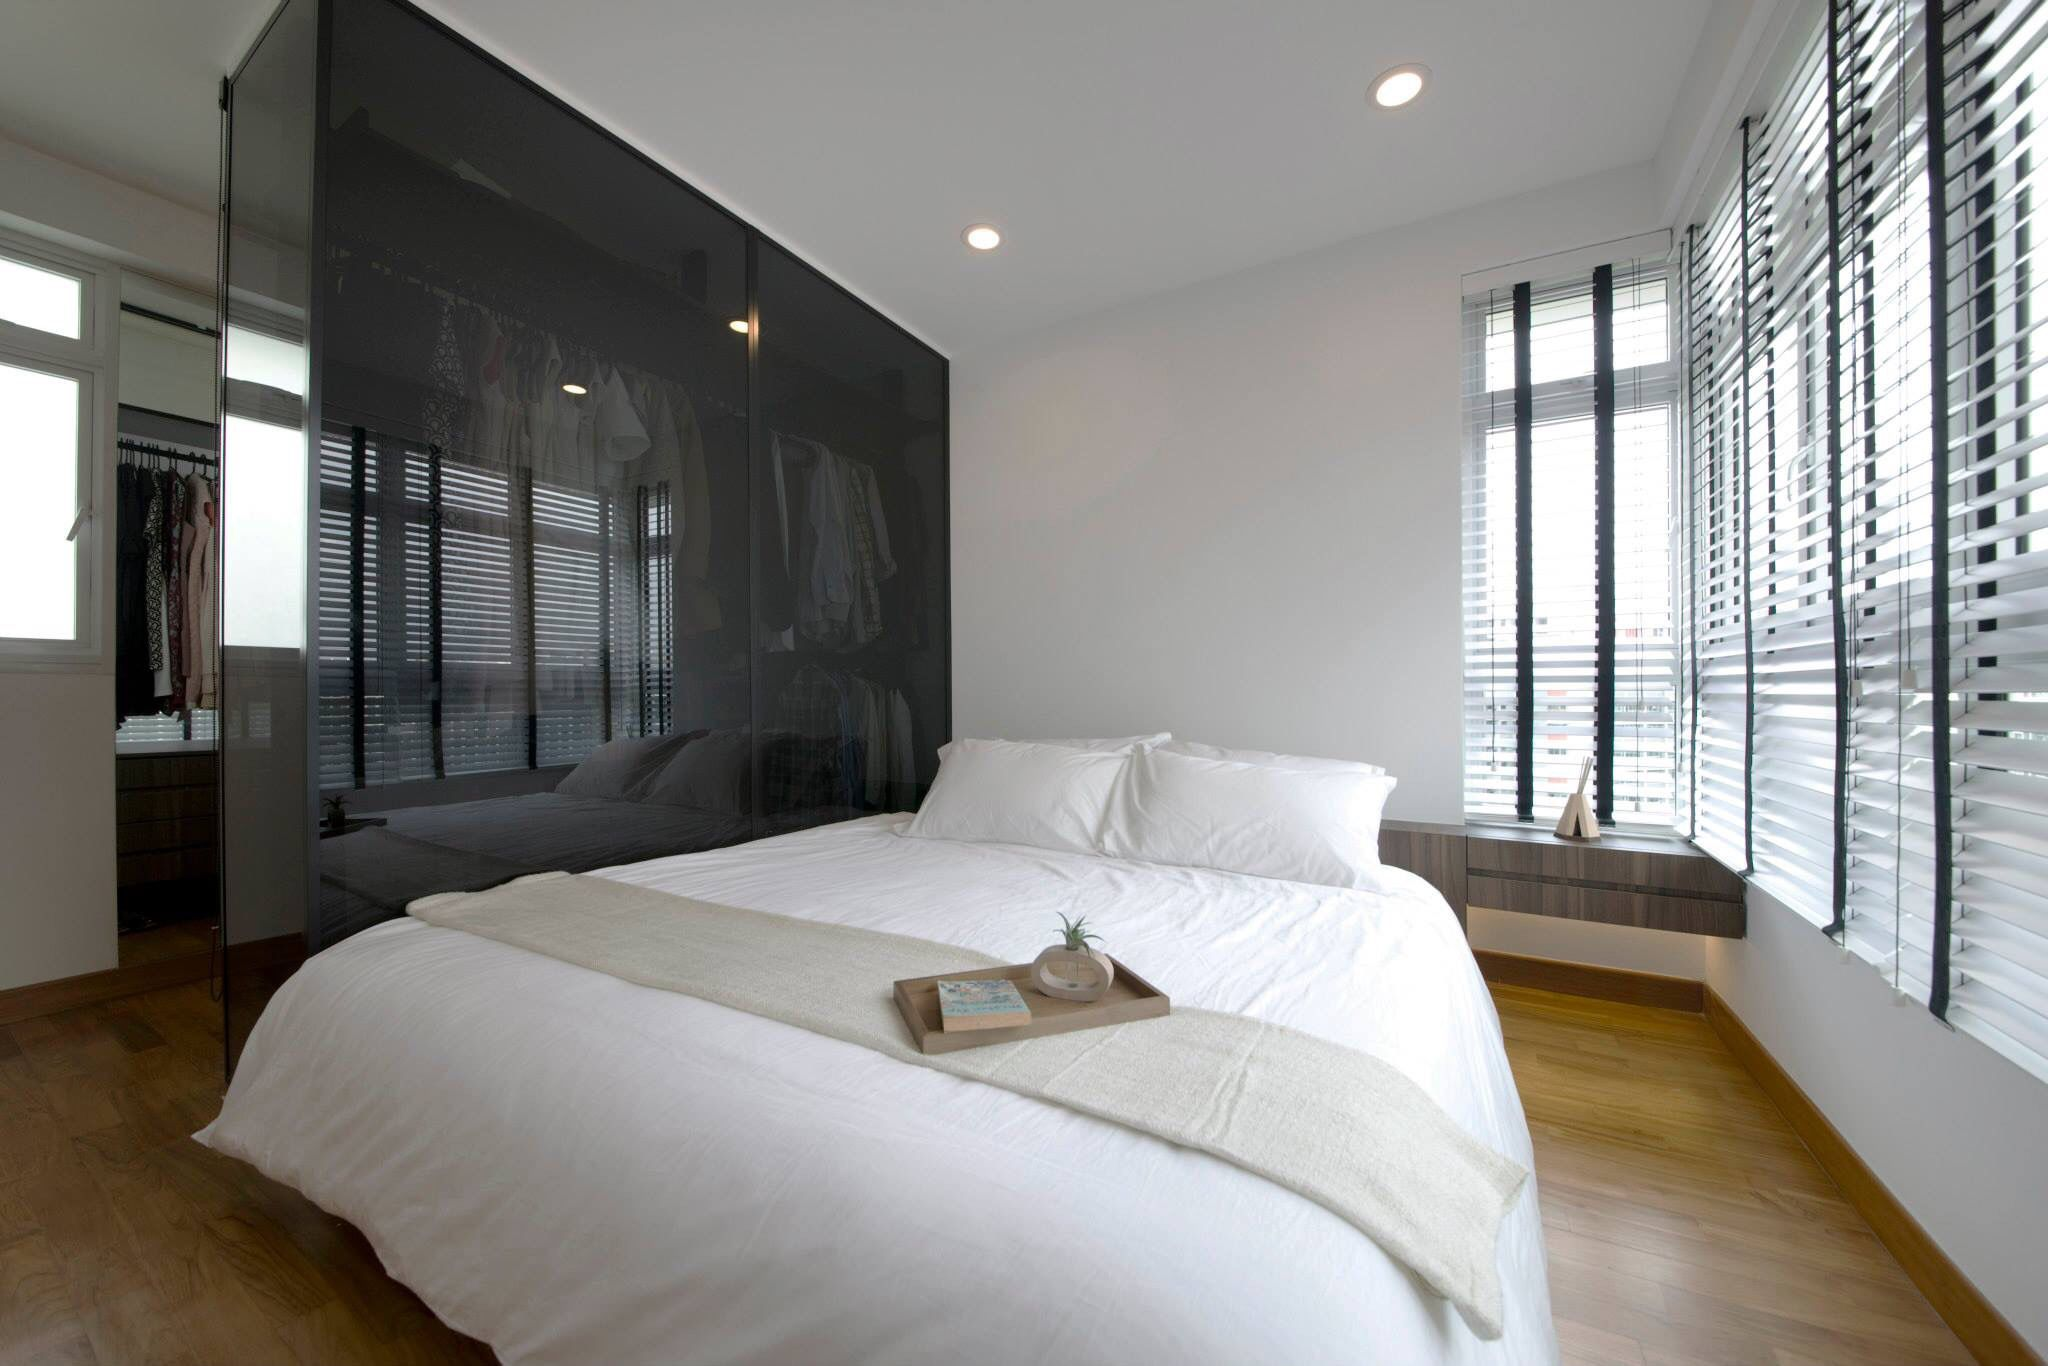 Master bedroom view with walk in wardrobe for the roof for 3 room design ideas